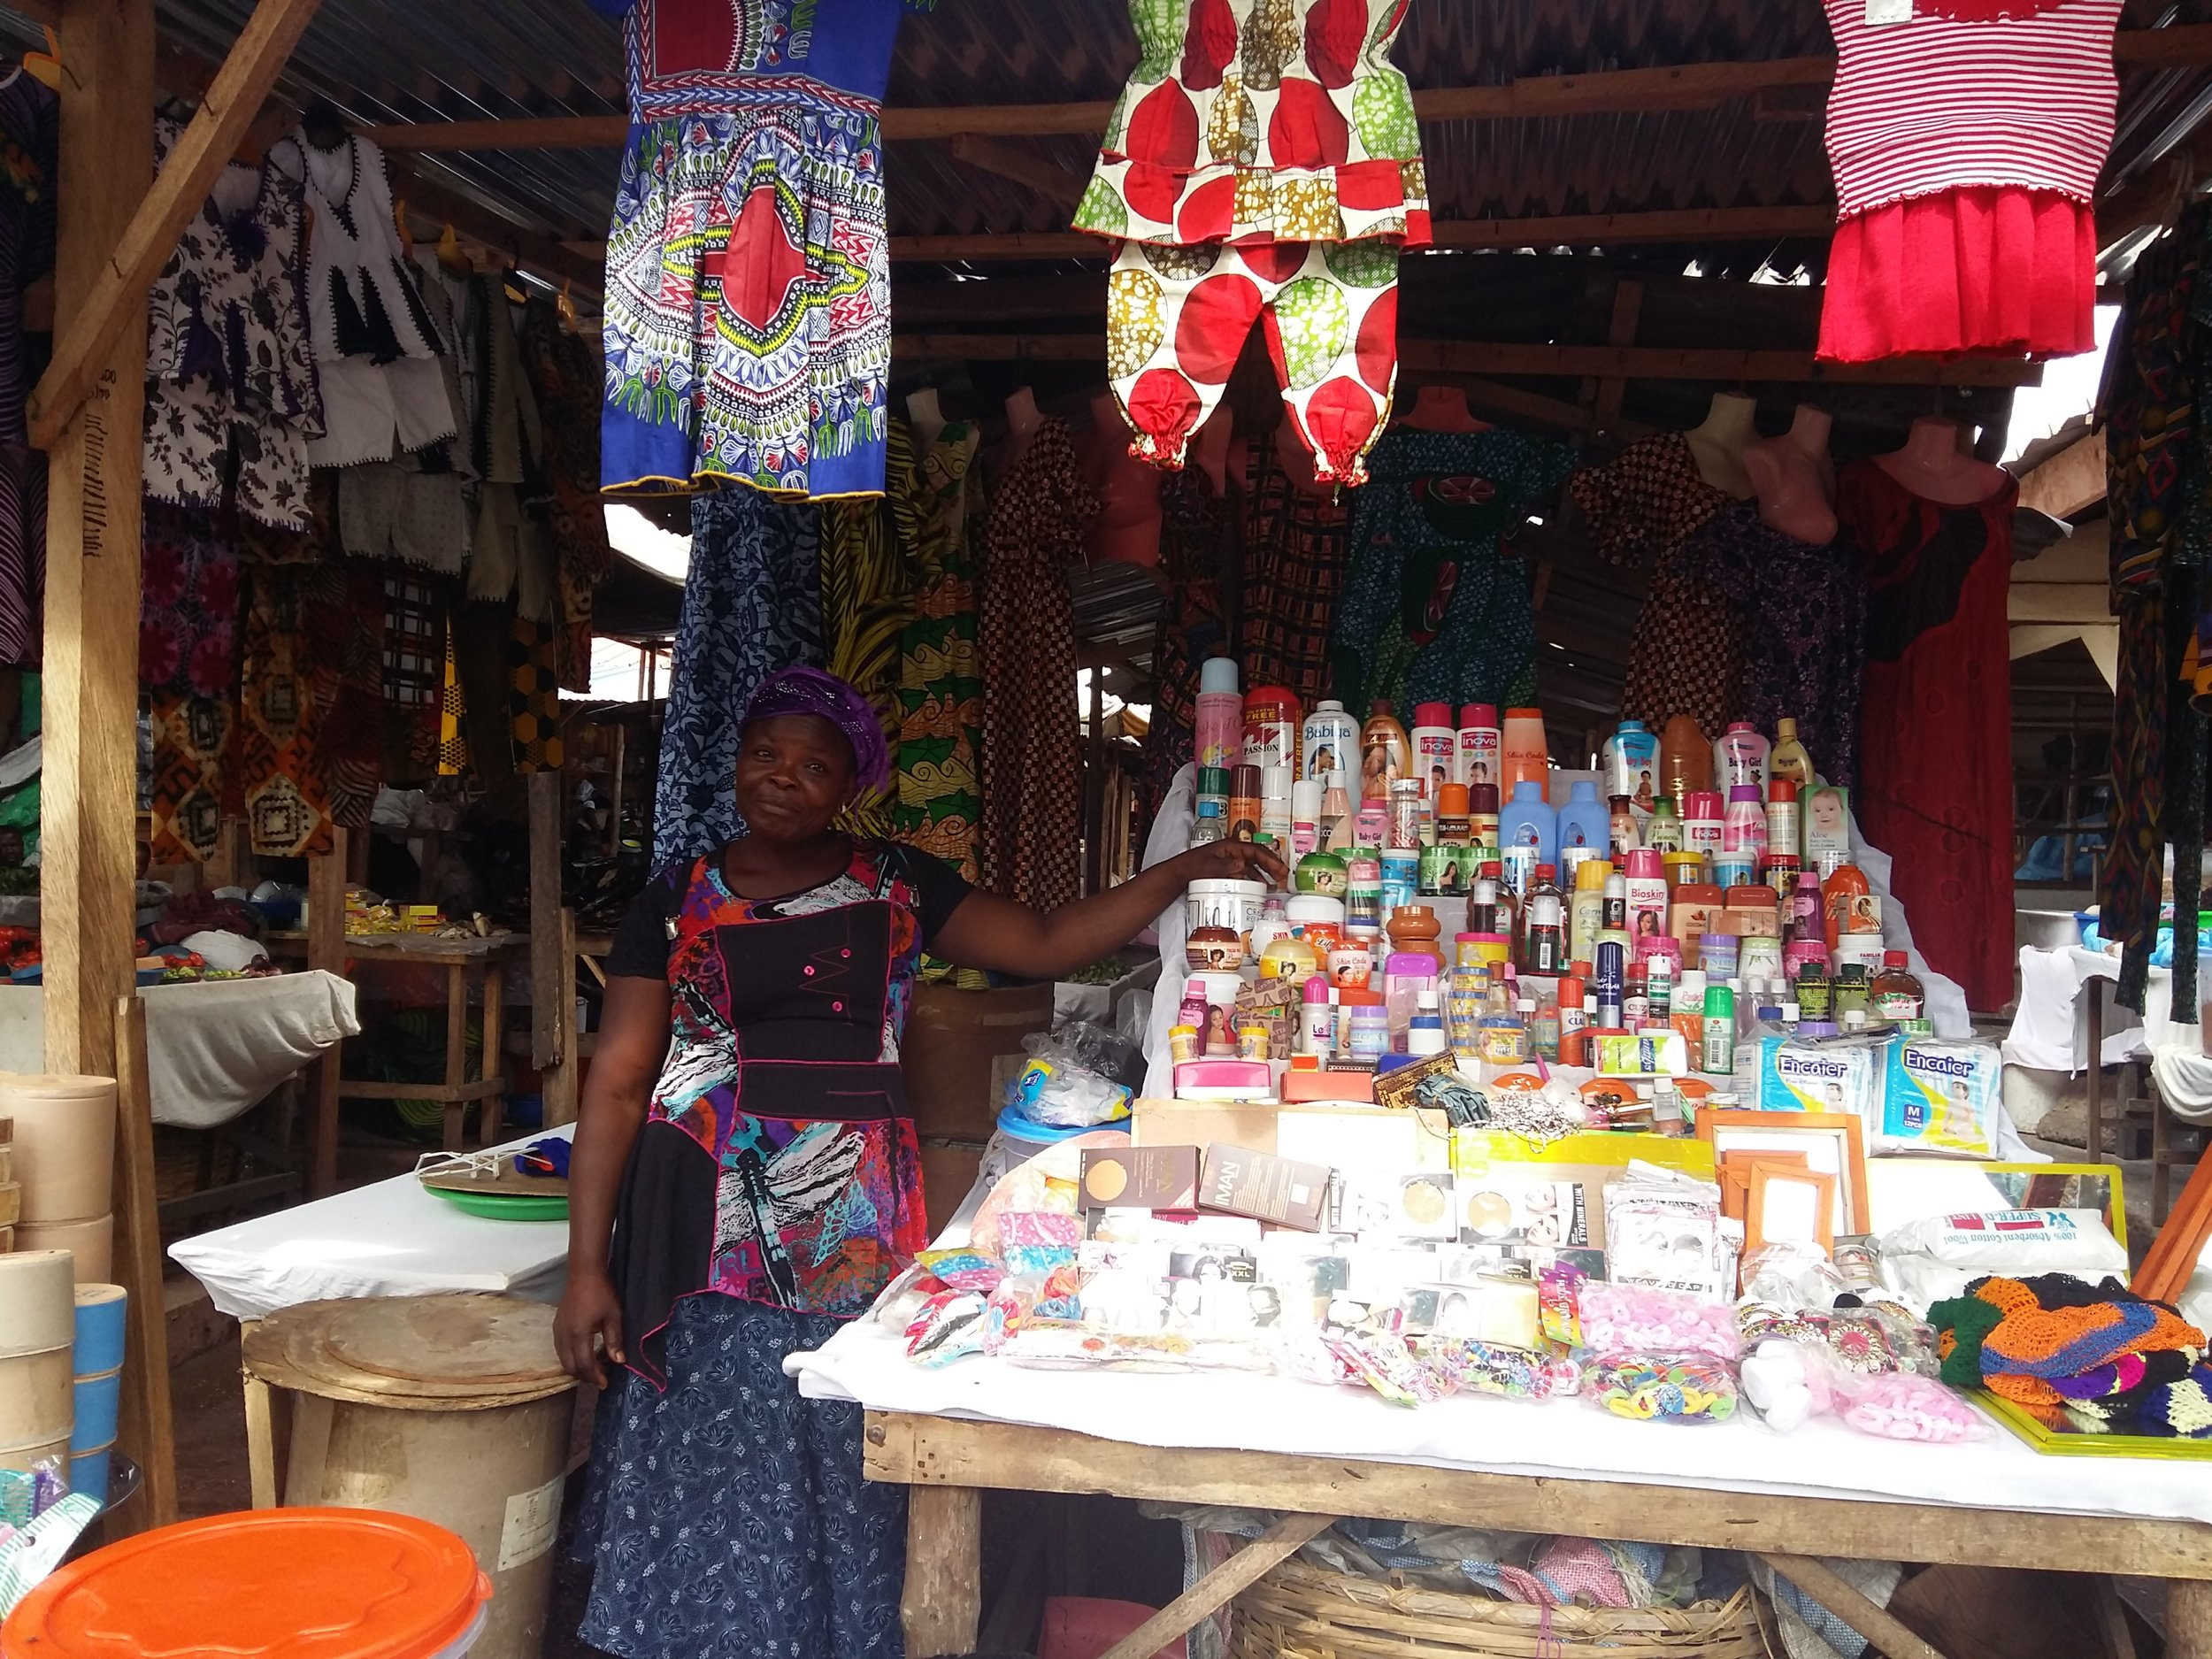 Adzo with her expanded market stall